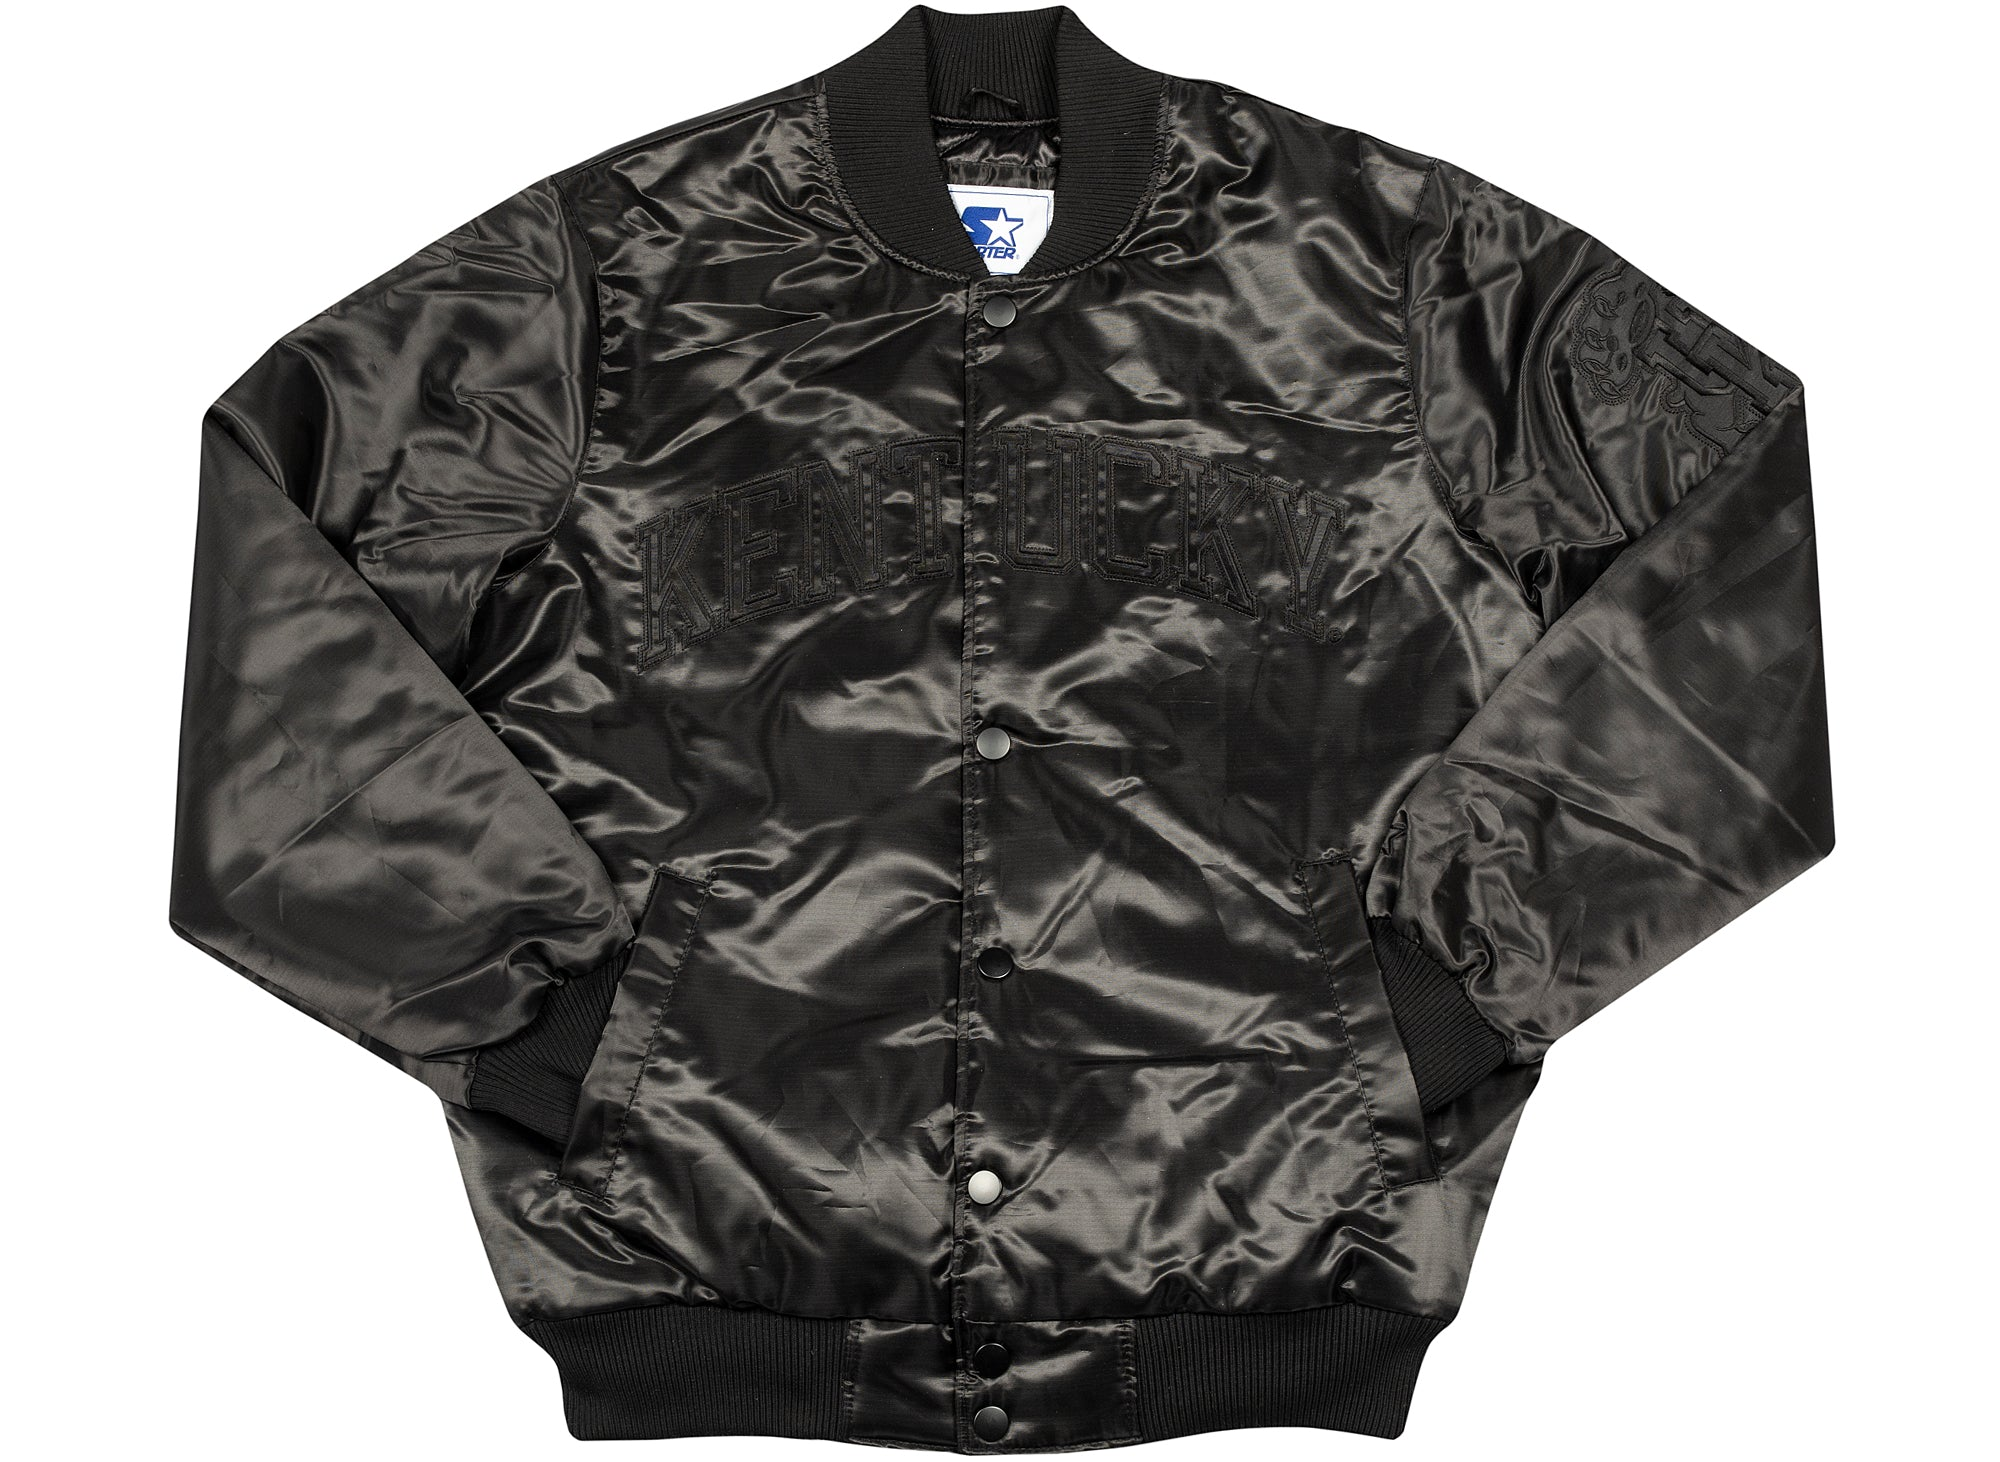 Starter x Oneness University of Kentucky Jacket - Limited Edition Triple Black Exclusive